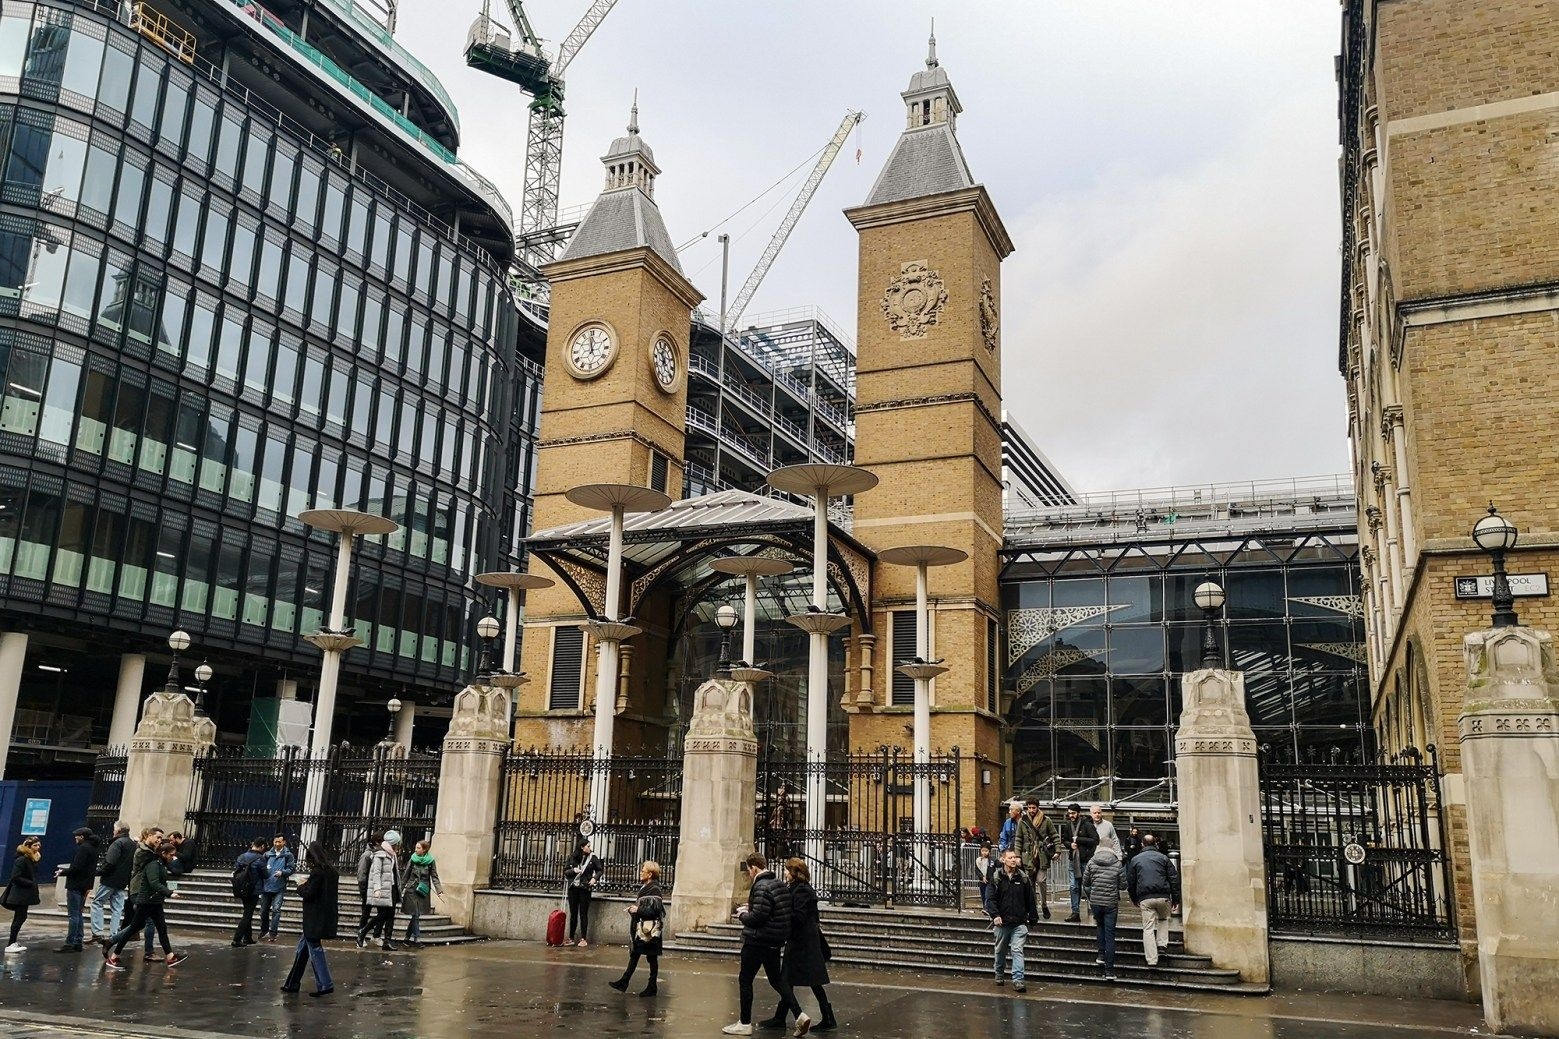 Liverpool street station | Uber destinations for Uber Drivers